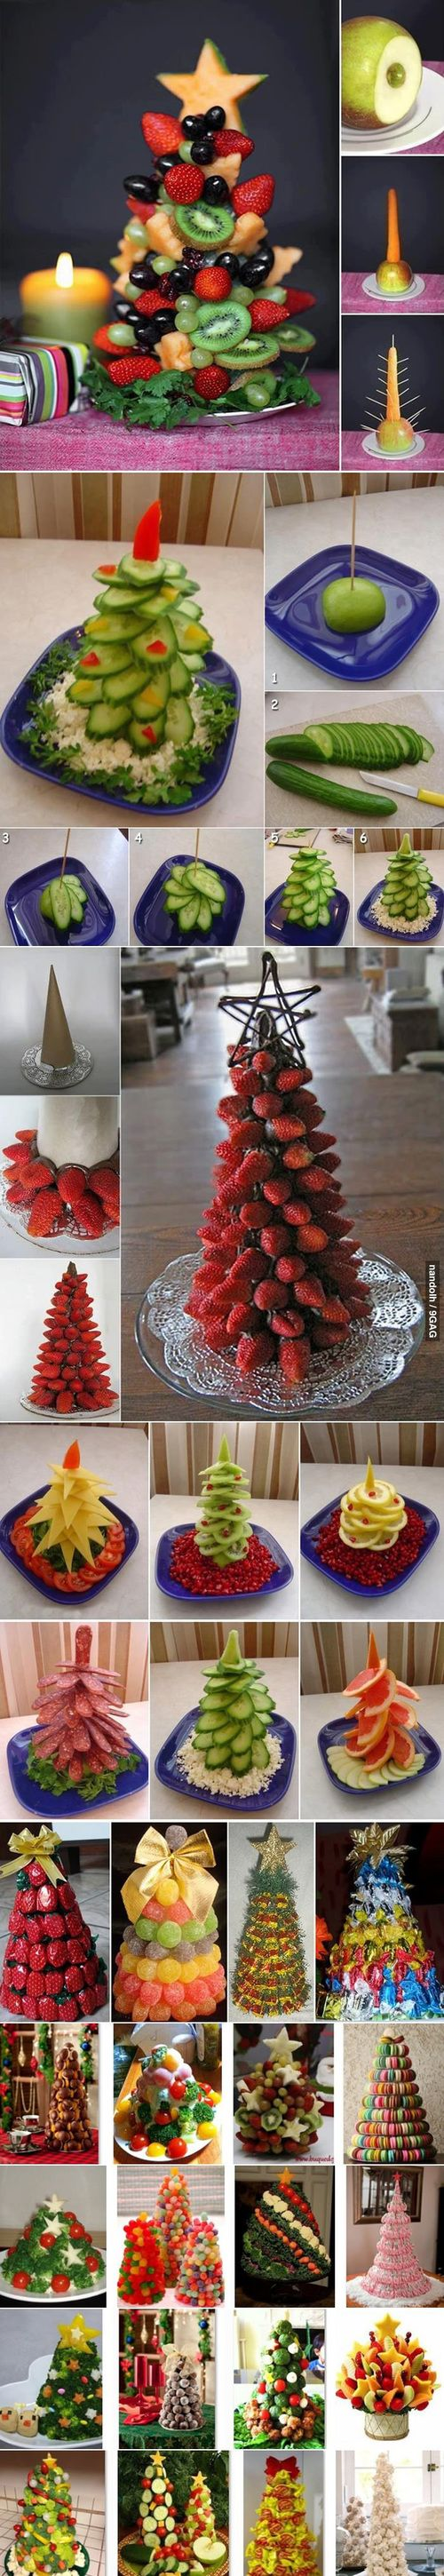 DIY appetizer Christmas trees